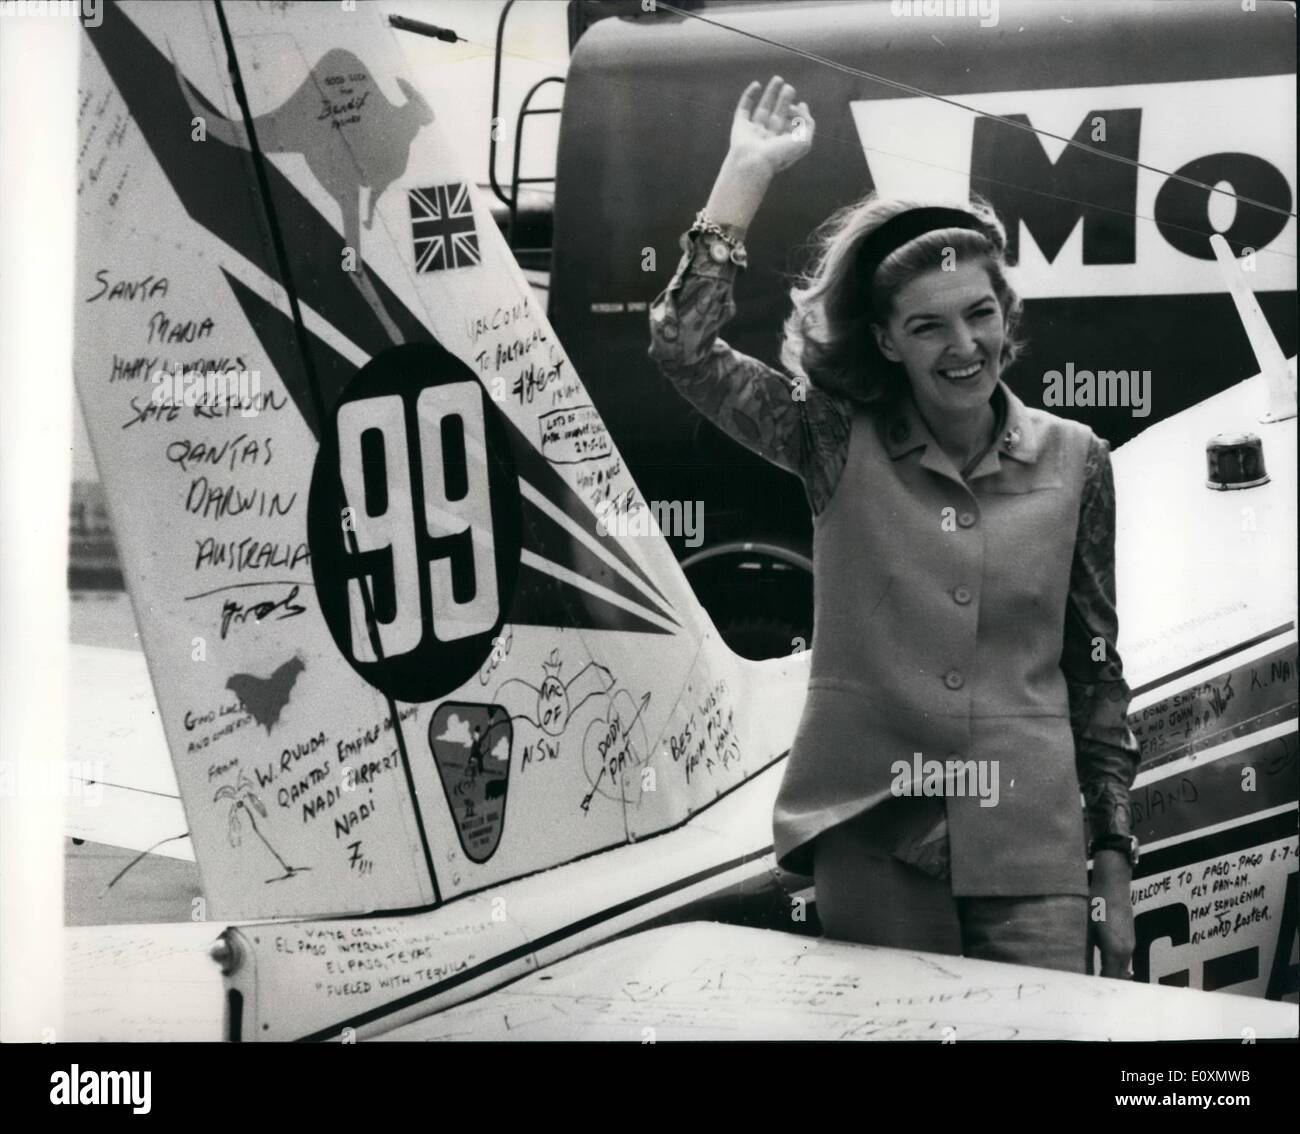 Jun. 06, 1967 - -Sheila Scotts Seats Out In Her Single-Engine Piper Comanche In Bid To Beat London To Cape Town Record: Sheila Scott, 39, who flow sole around the world last year, took off from Heathrow Airport yesterday on a 7,800-mile flight to South Africa in the single-engined piper Comanche. She is trying for the London-Cape town ladies' Solo Record-unbroken since Amy Johnson flew to South Africa in 78 hours 28 minutes in 1936. Miss Scott will fly 1,000 miles more than Amy Johnson because of overflying restrictions by Arab and African States. Photo shows - Stock Image